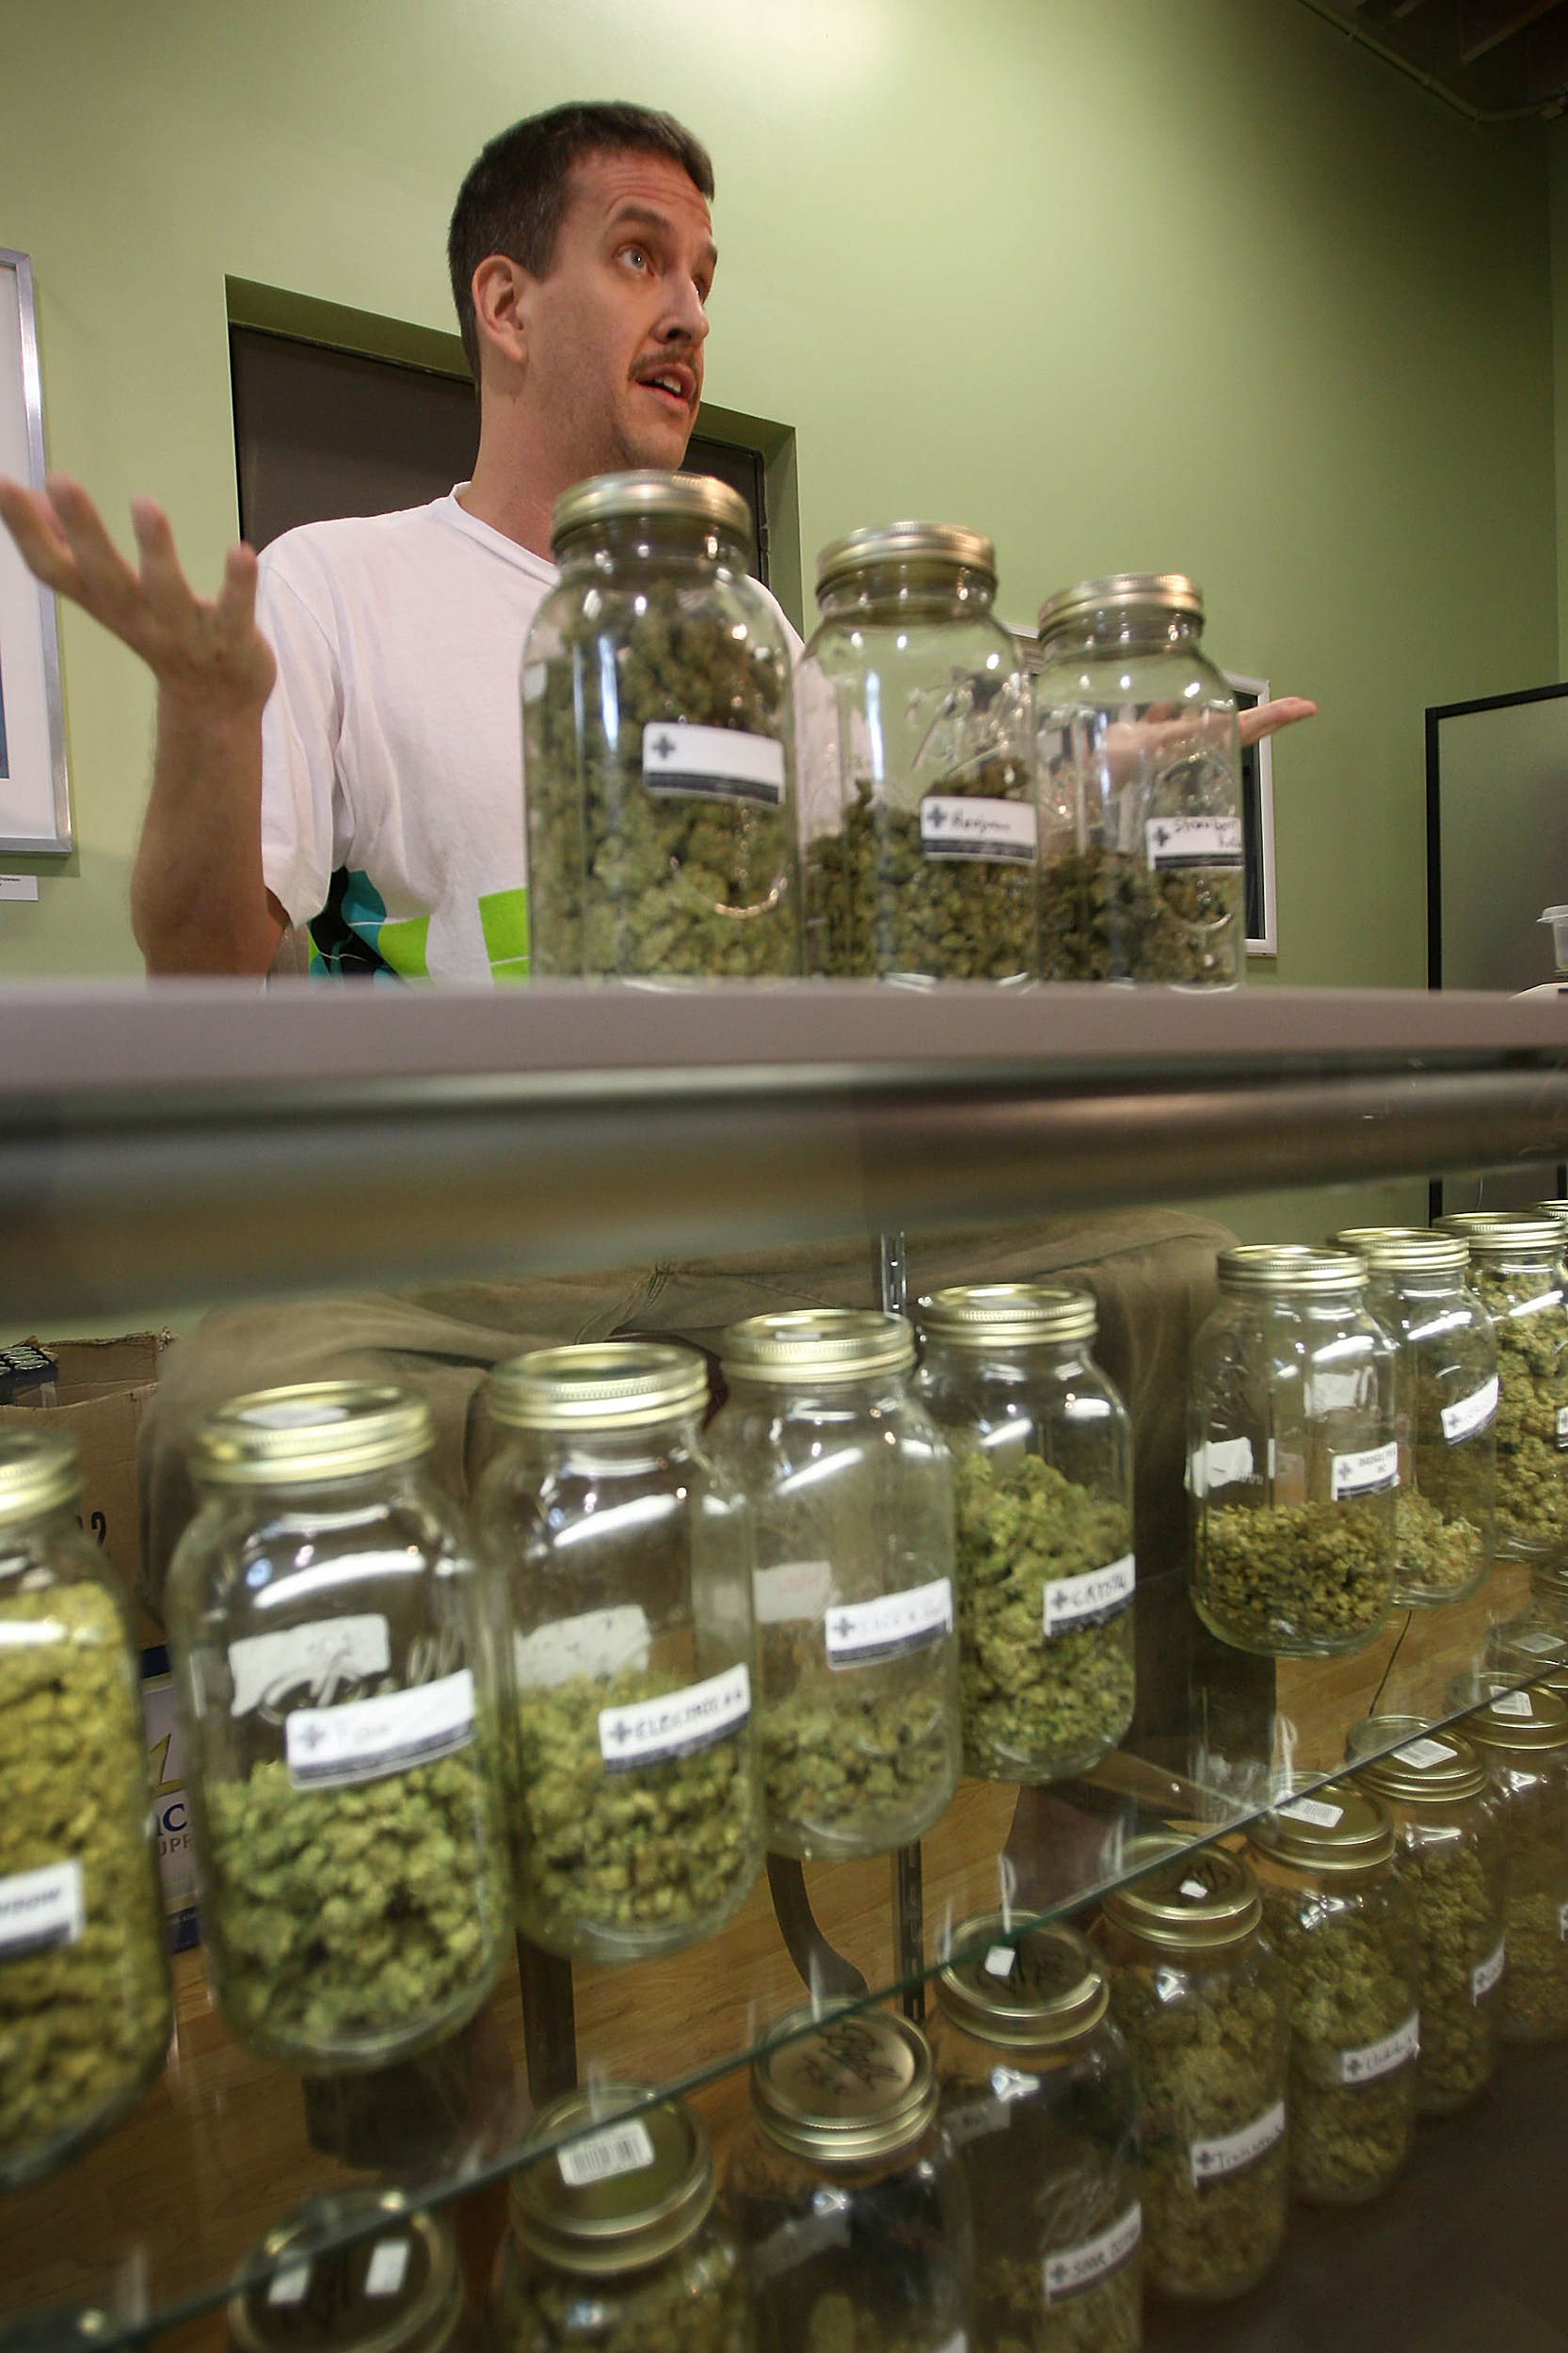 The us supreme court ruling on medical marijuana in nevada